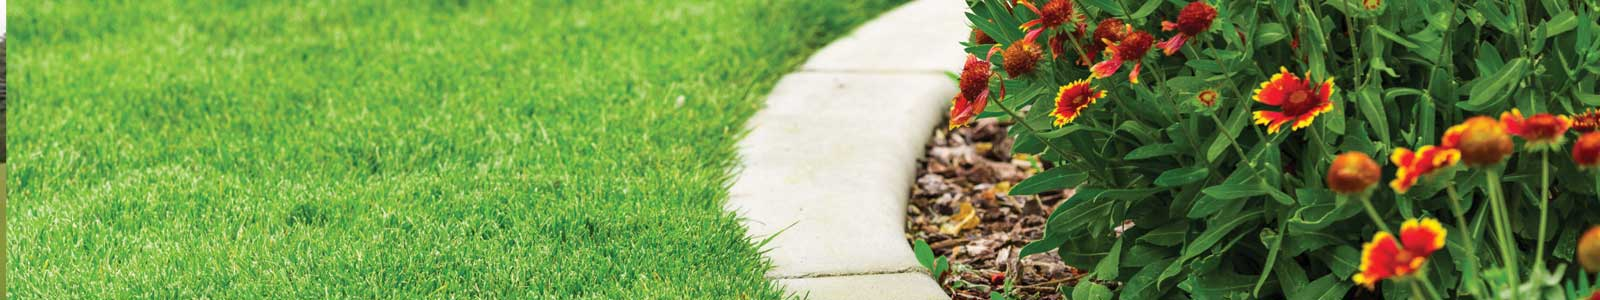 Cedar Hill Property Maintenance Lawn and Garden Care